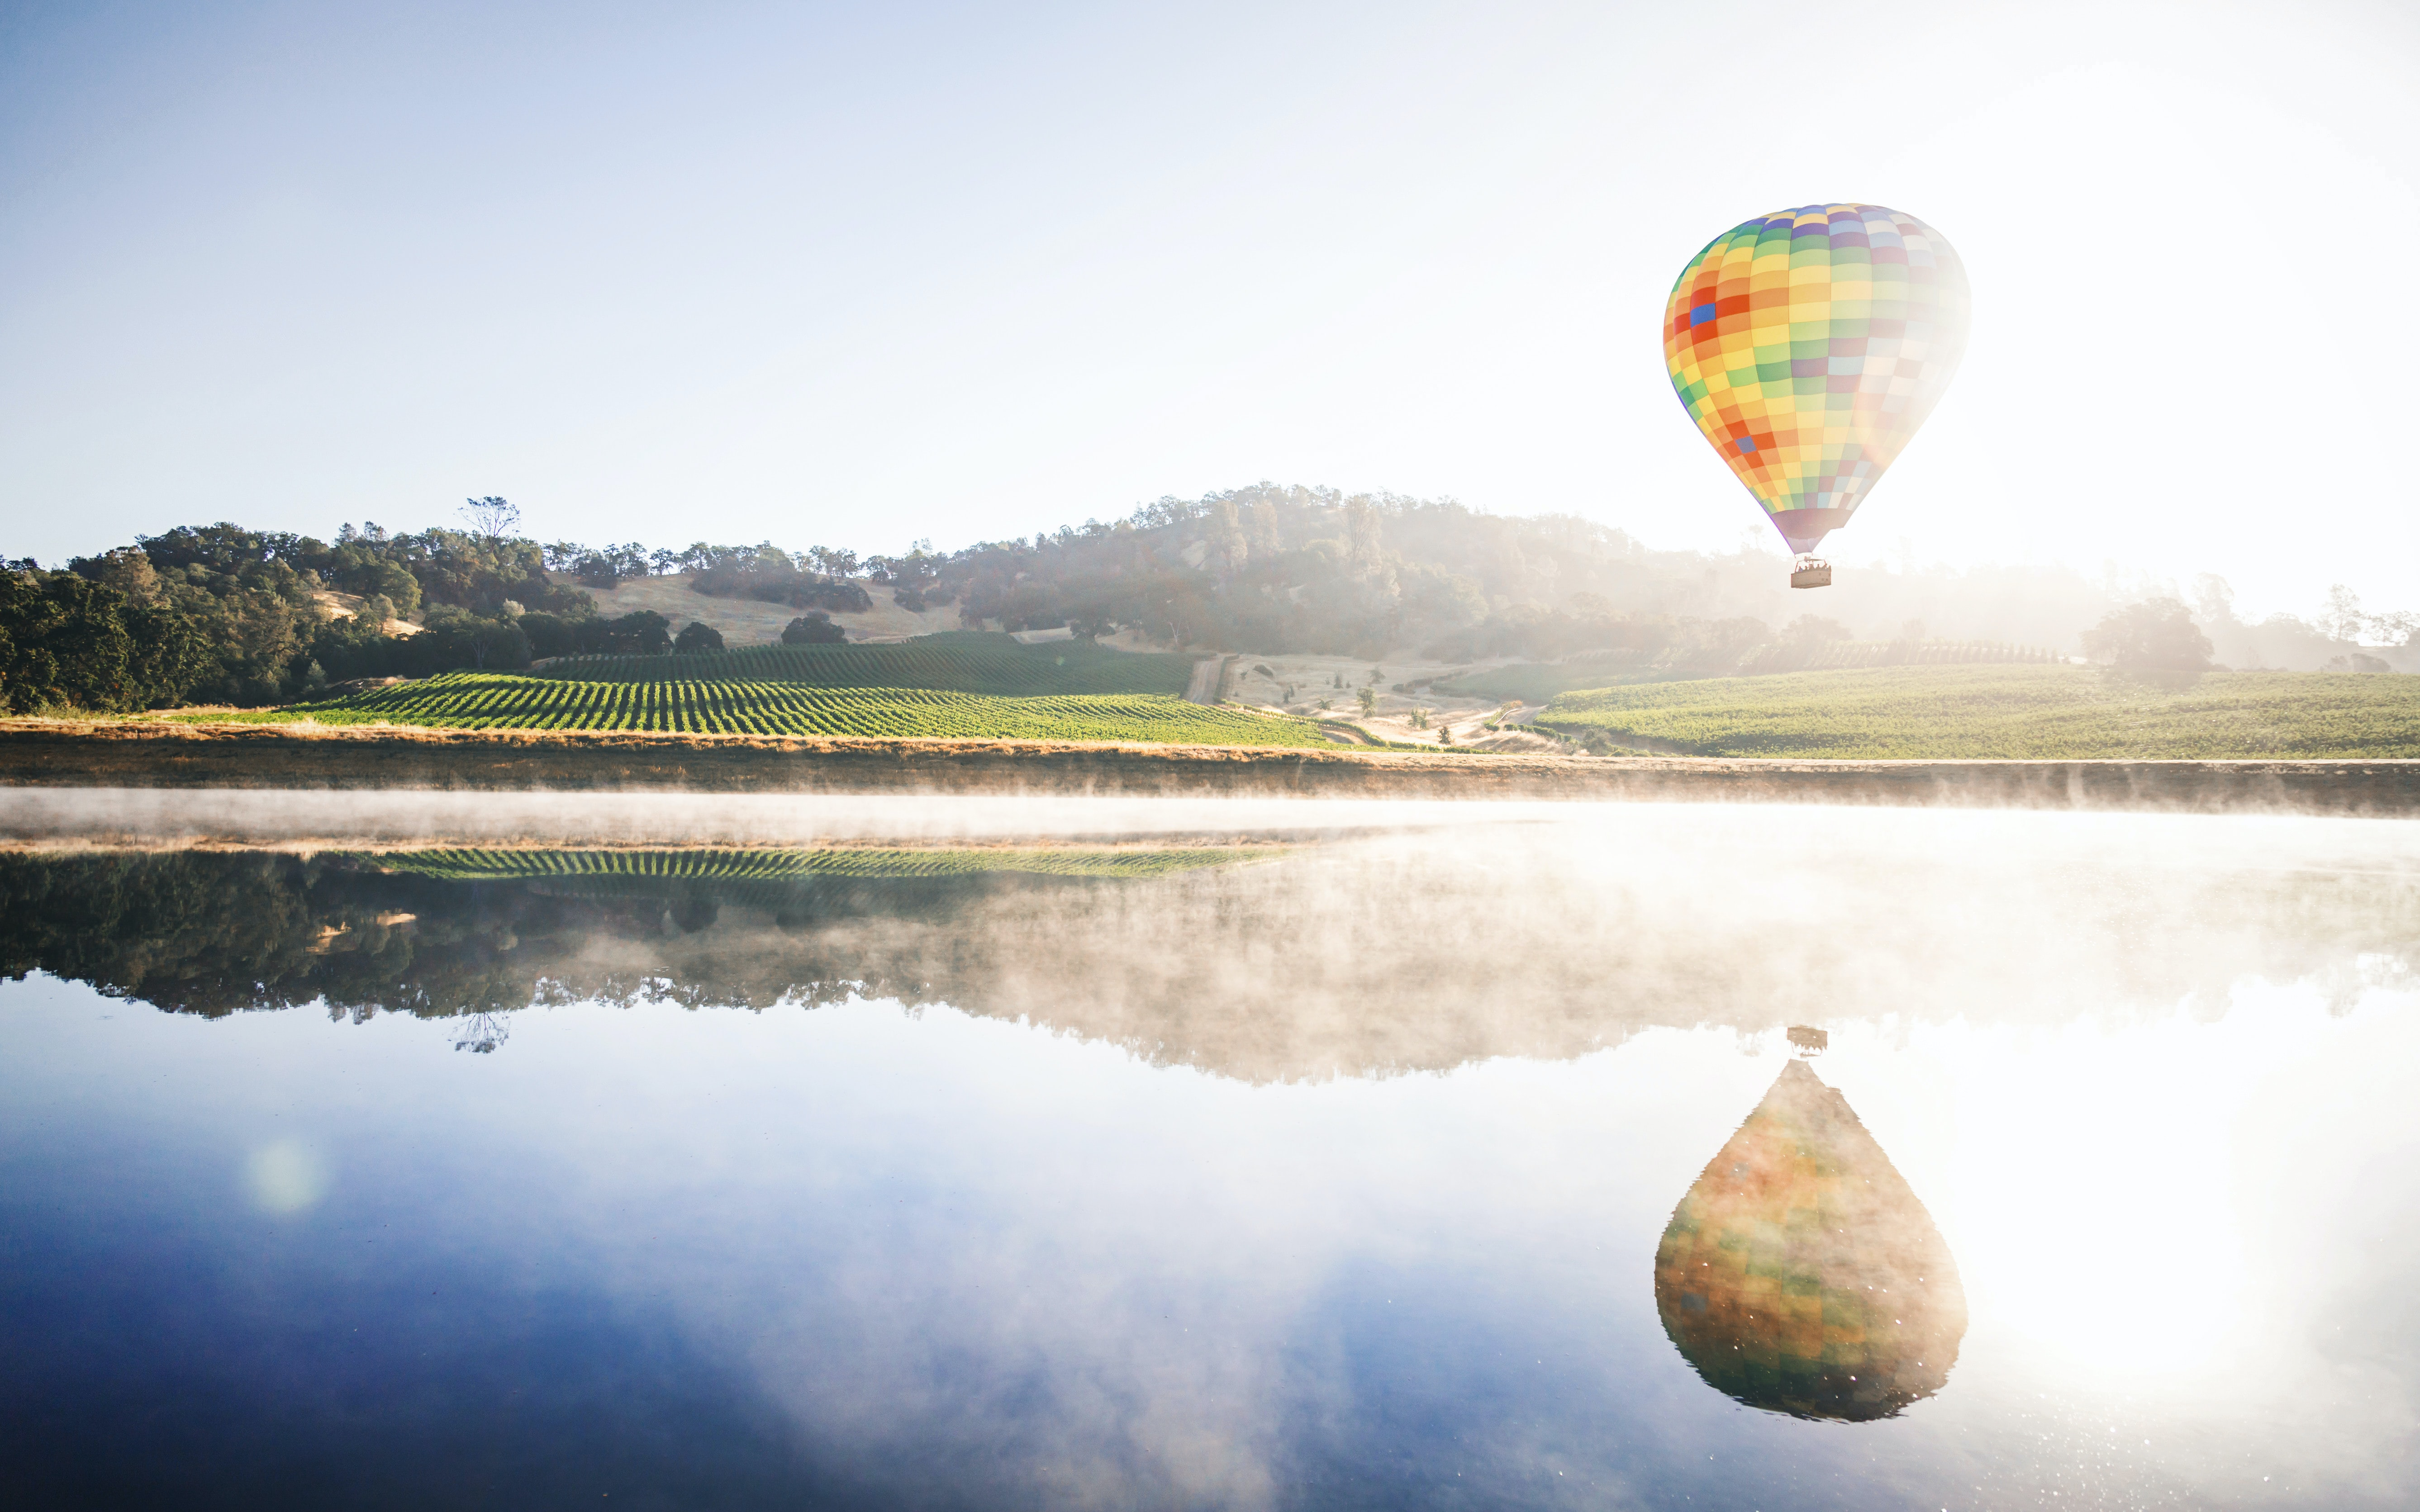 A hot air balloon flying over a lake on a foggy morning.